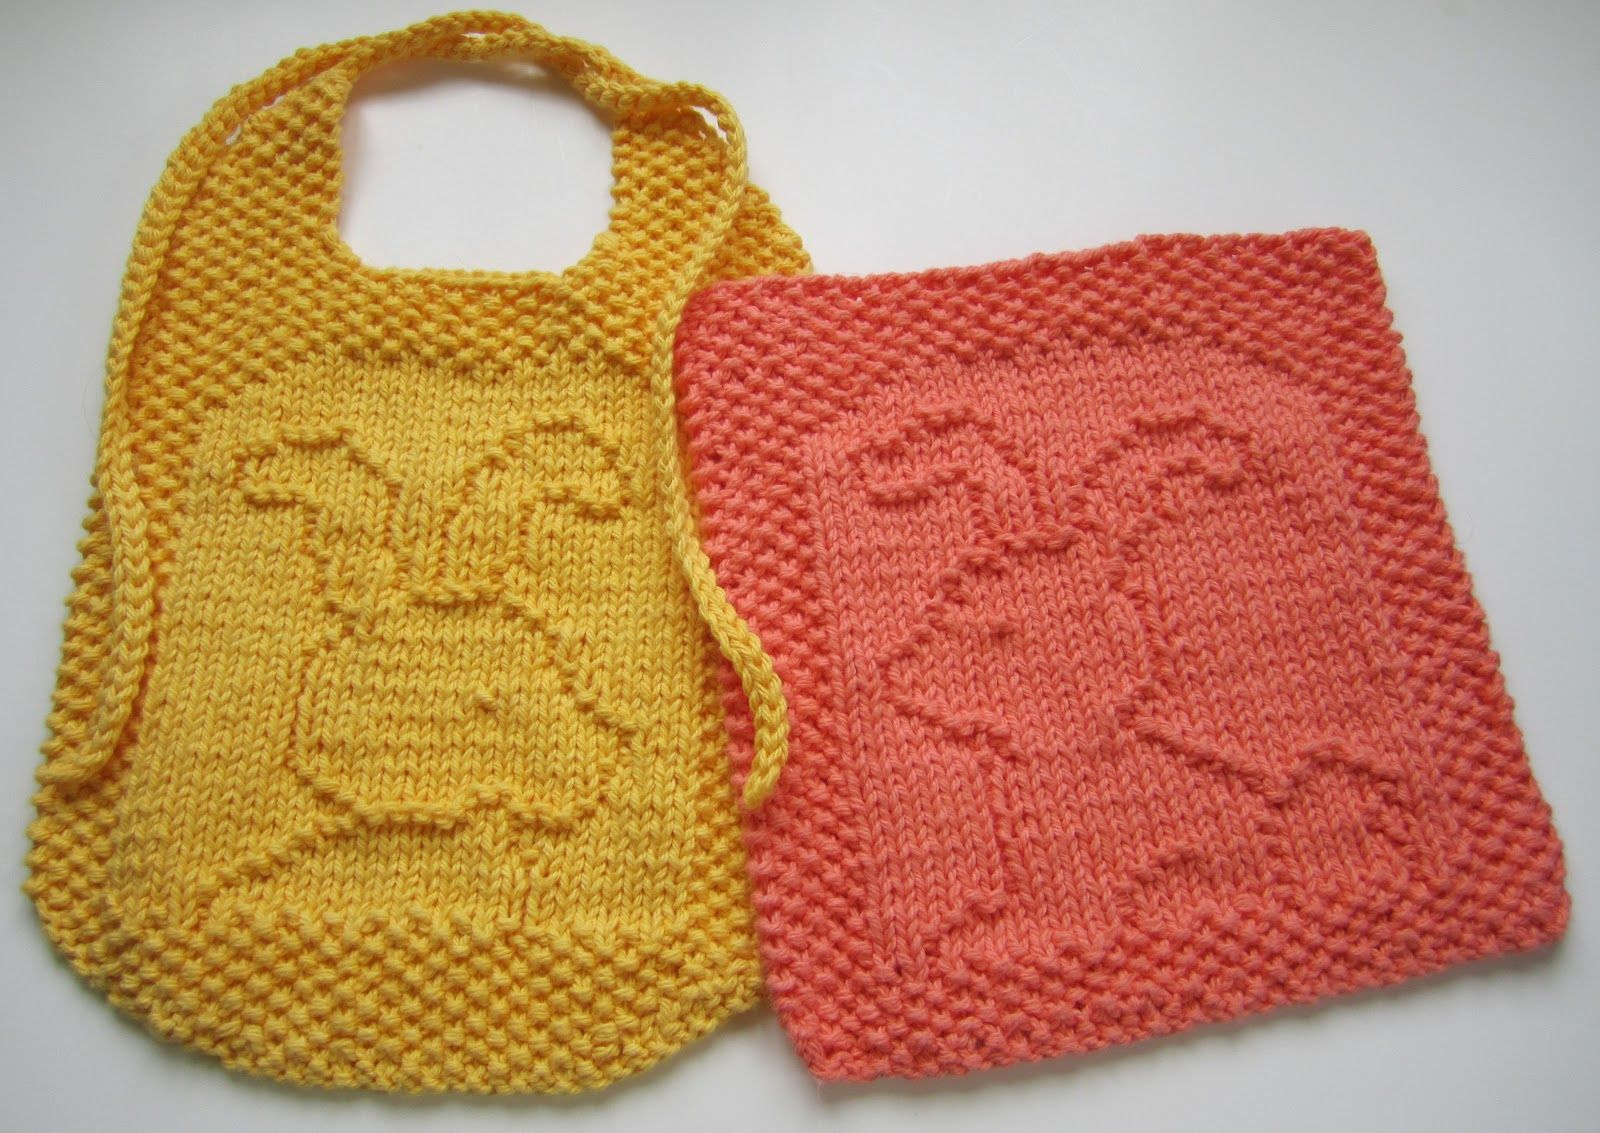 Free patterns for dishcloths and bibs down cloverlaine a tail of free patterns for dishcloths and bibs down cloverlaine a tail of two bunnies knitting bibs and washcloths pinterest dishcloth knitting patterns and bankloansurffo Image collections